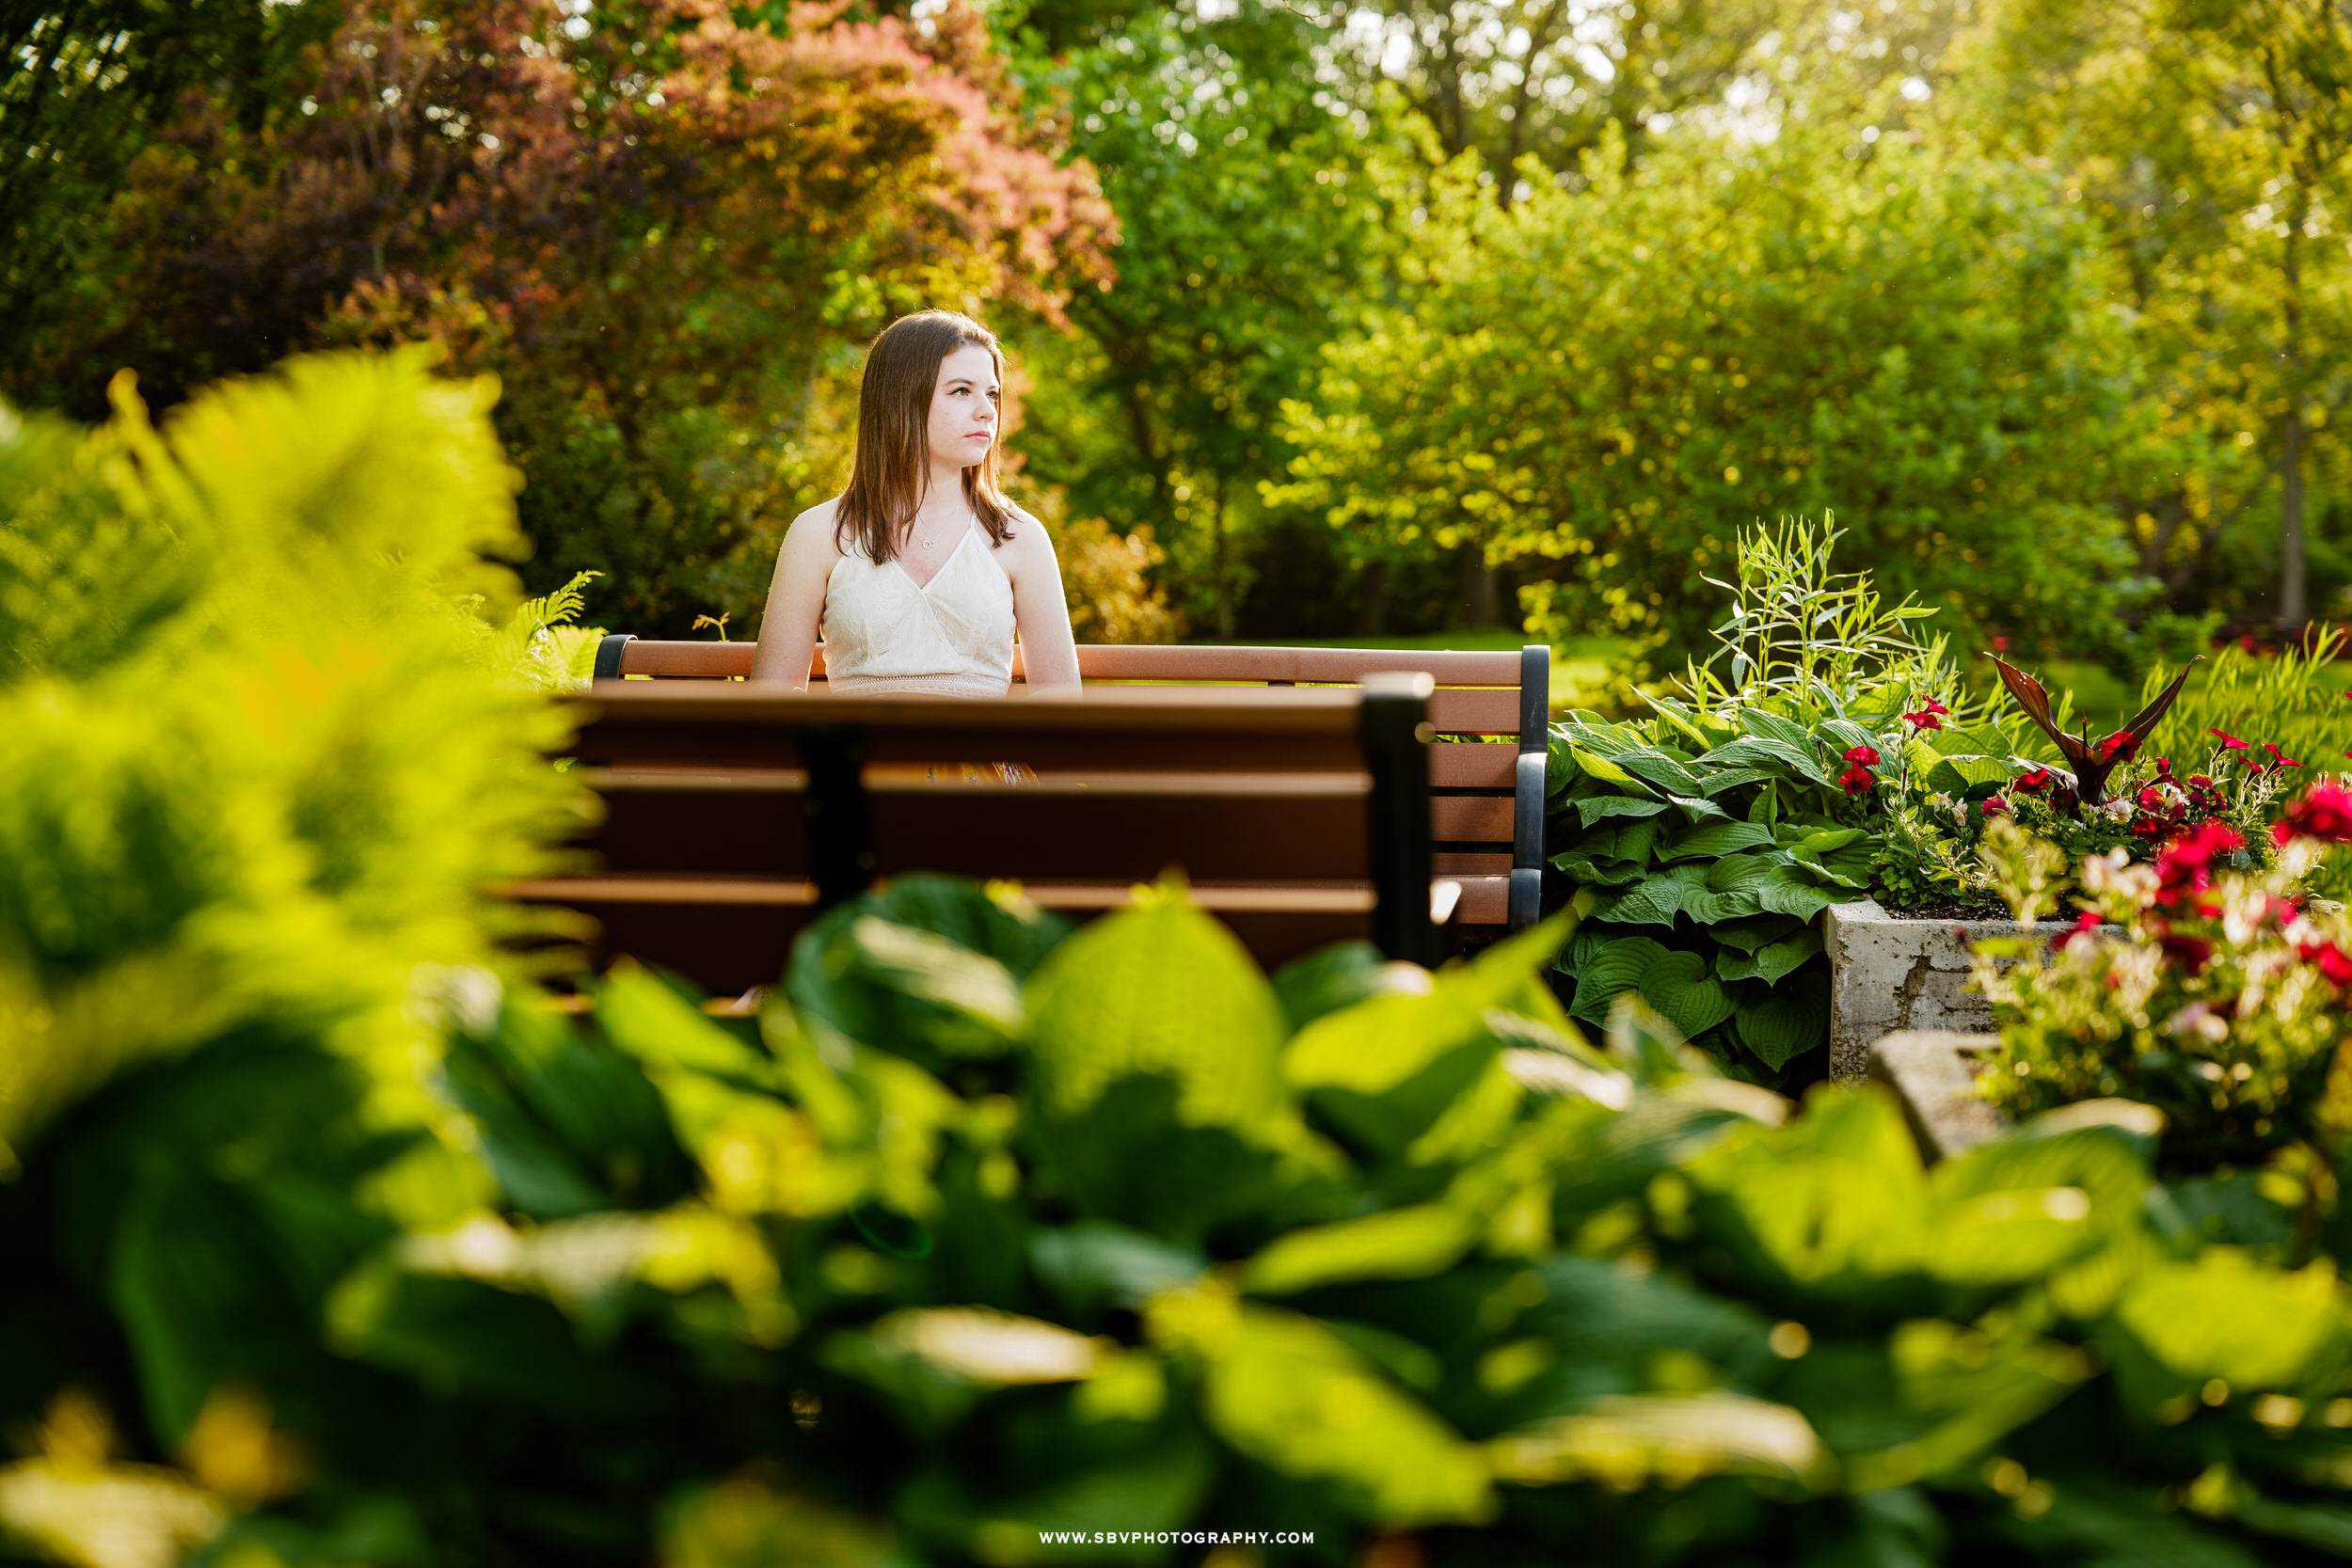 Senior girl sitting on a garden bench in Valparaiso, Indiana.